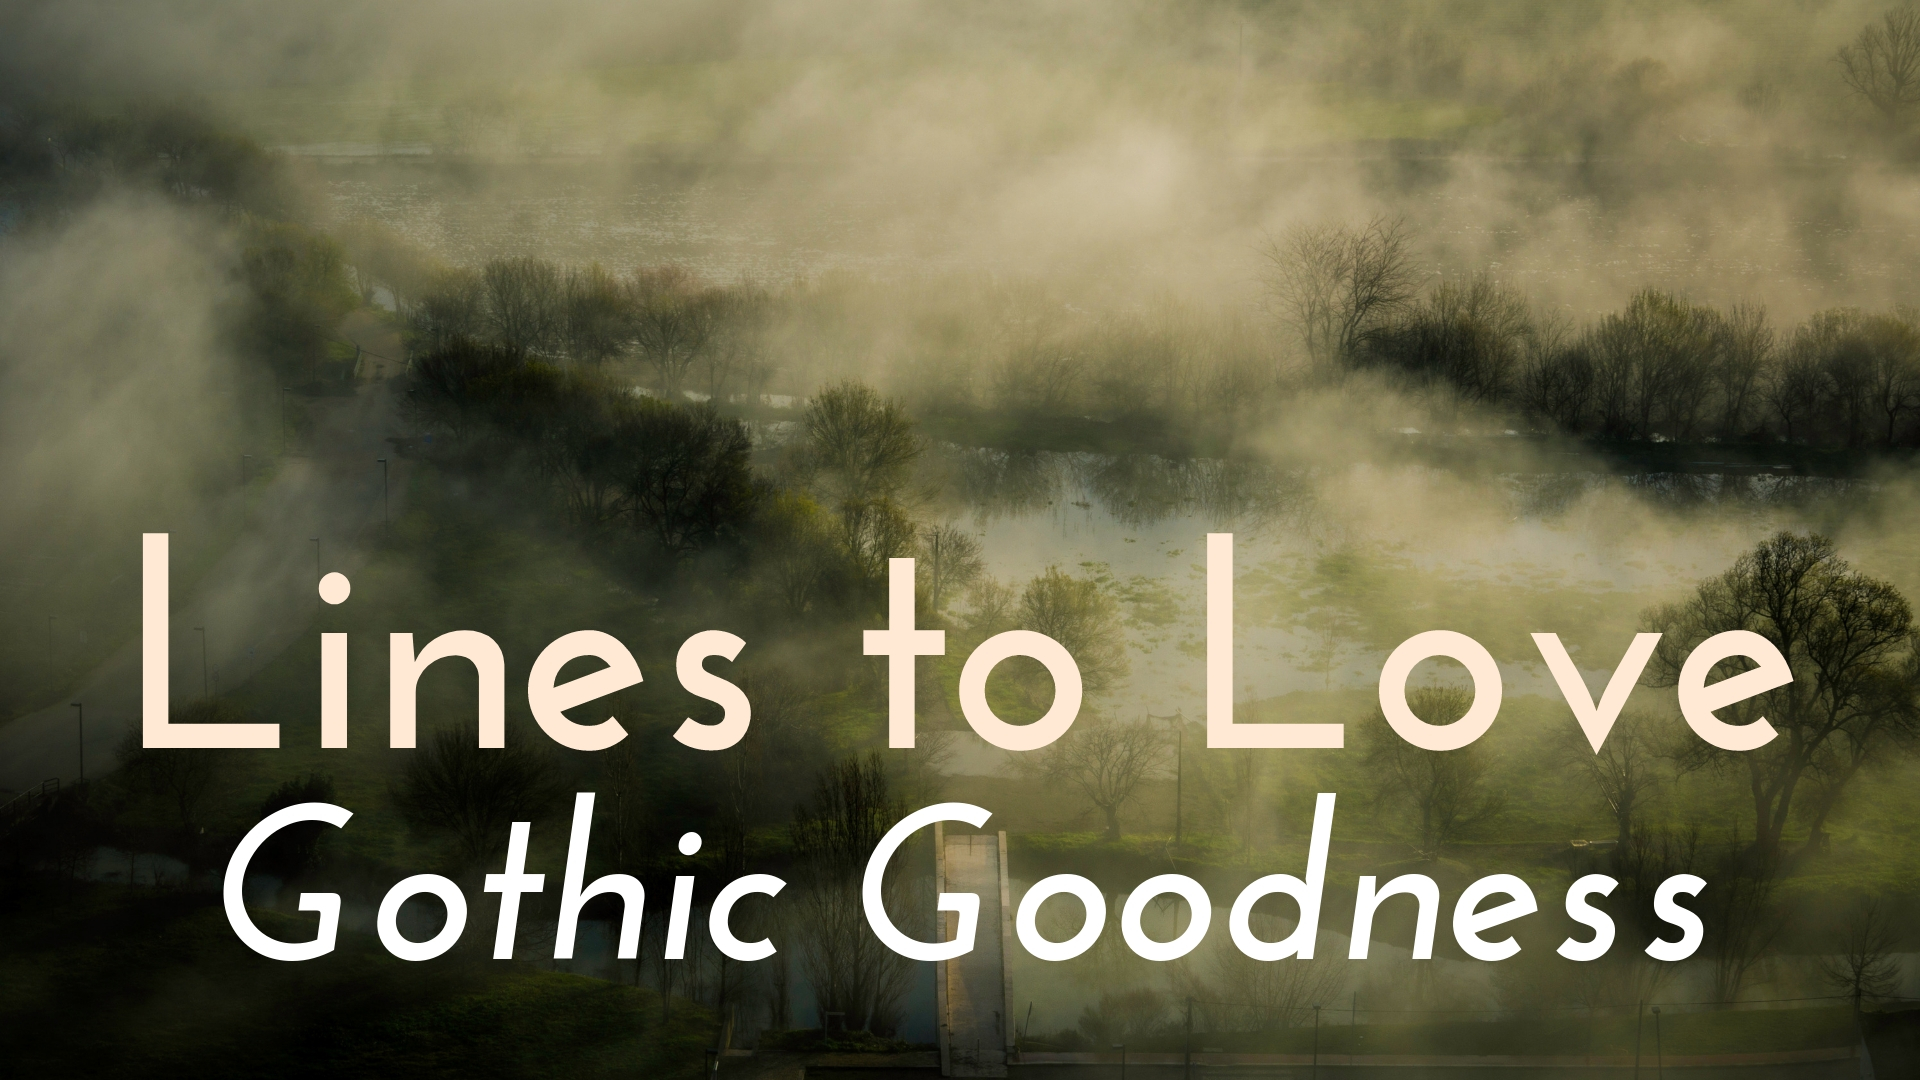 banner-lines-to-love-gothic-01.jpg